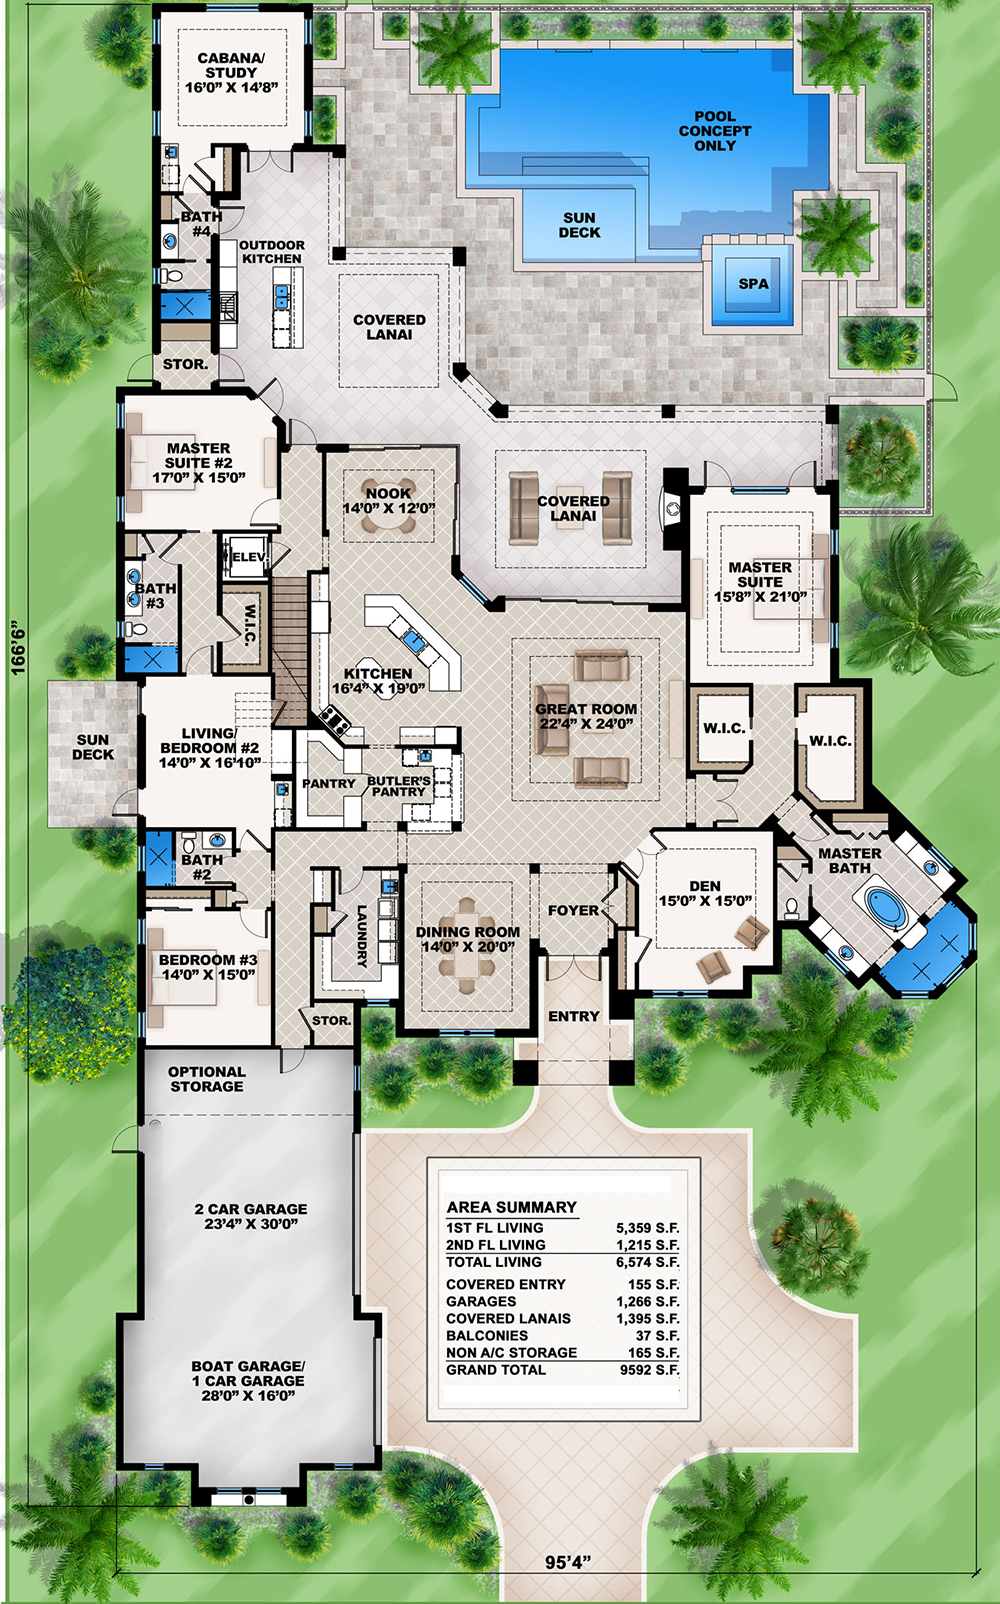 Mediterranean dream home plan with 2 master suites Dream homes plans